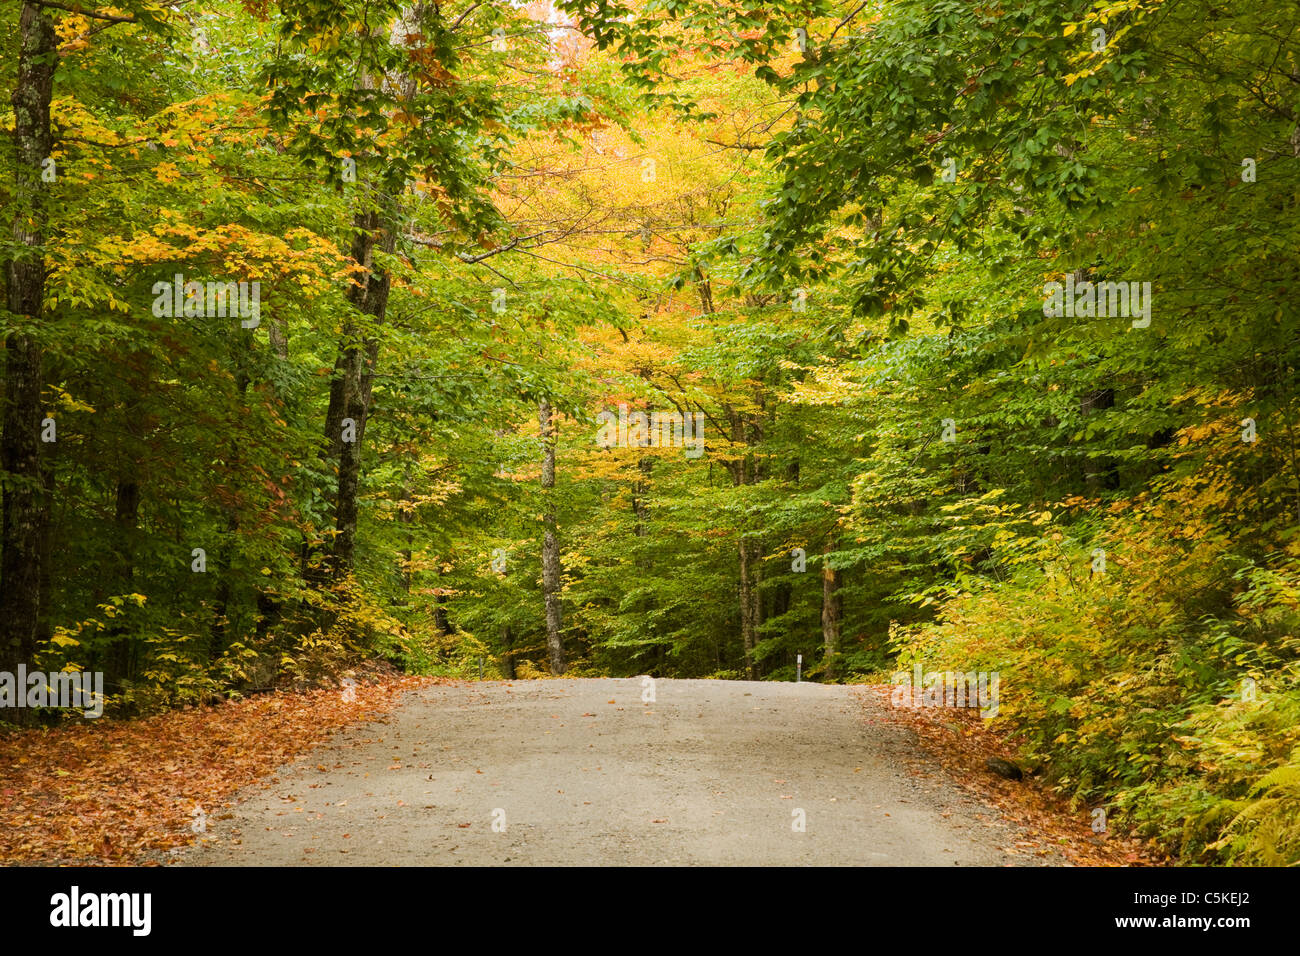 A back road through fall colored trees Stock Photo, Royalty Free ...